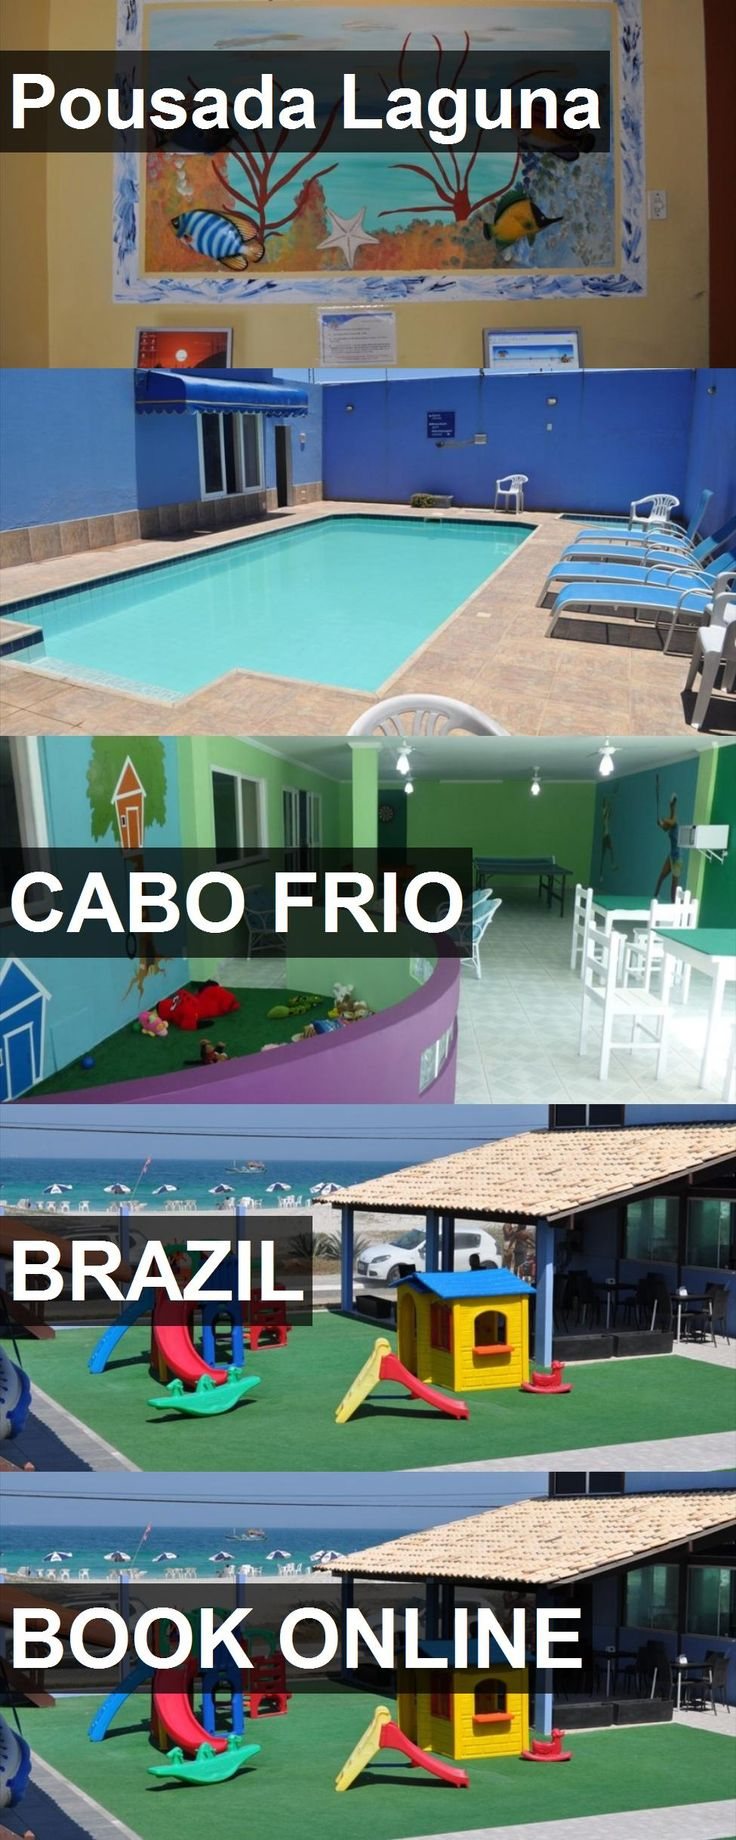 Hotel Pousada Laguna in Cabo Frio, Brazil. For more information, photos, reviews and best prices please follow the link. #Brazil #CaboFrio #PousadaLaguna #hotel #travel #vacation